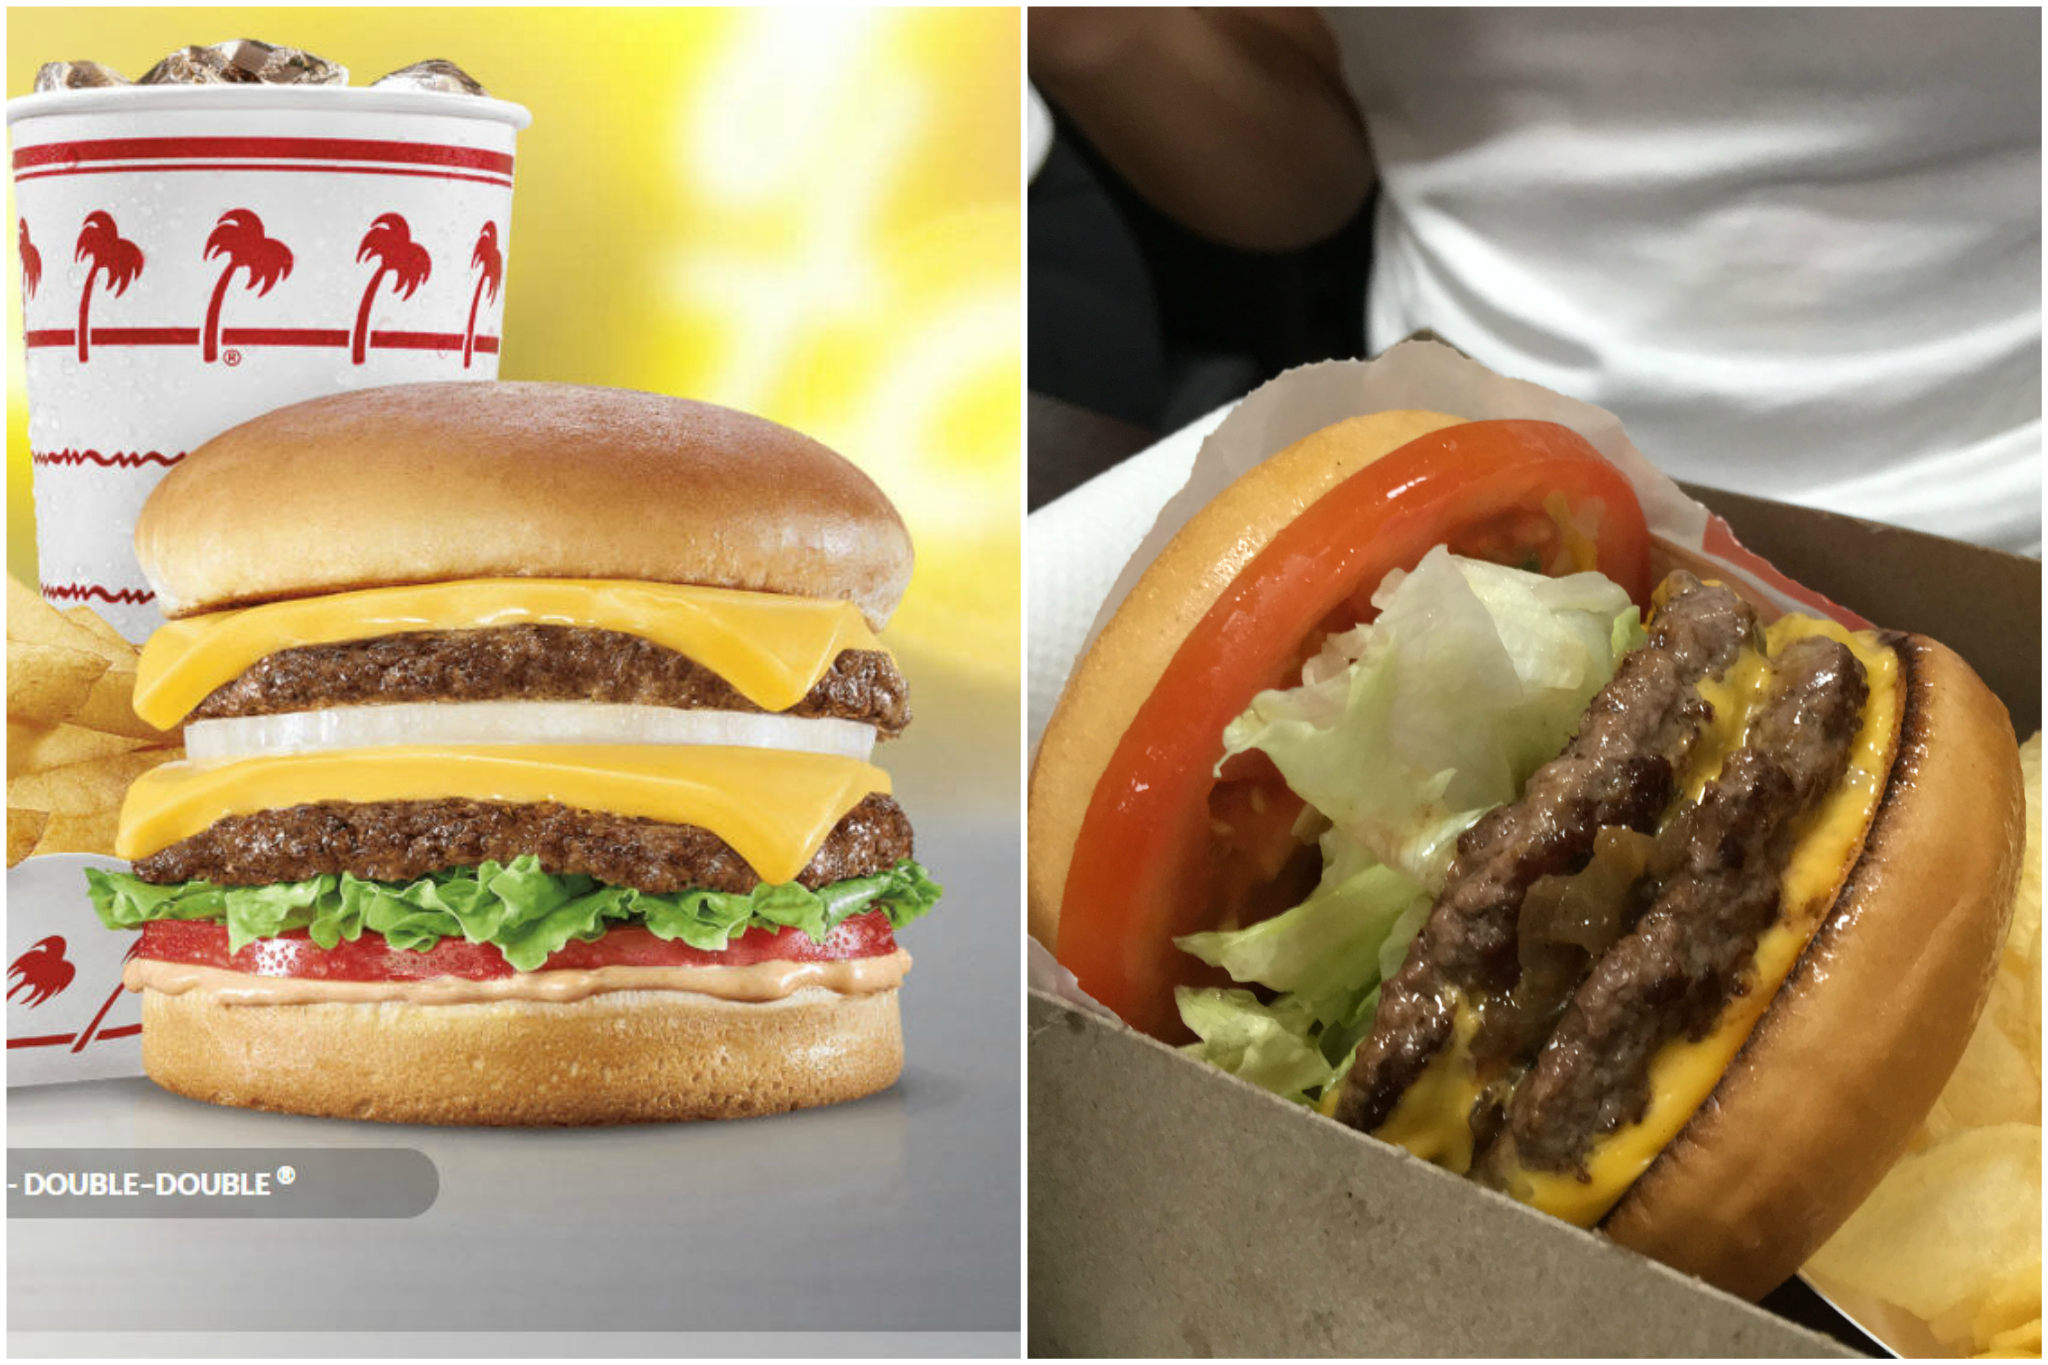 See what fast food companies think their food looks like for Lean cuisine vs fast food